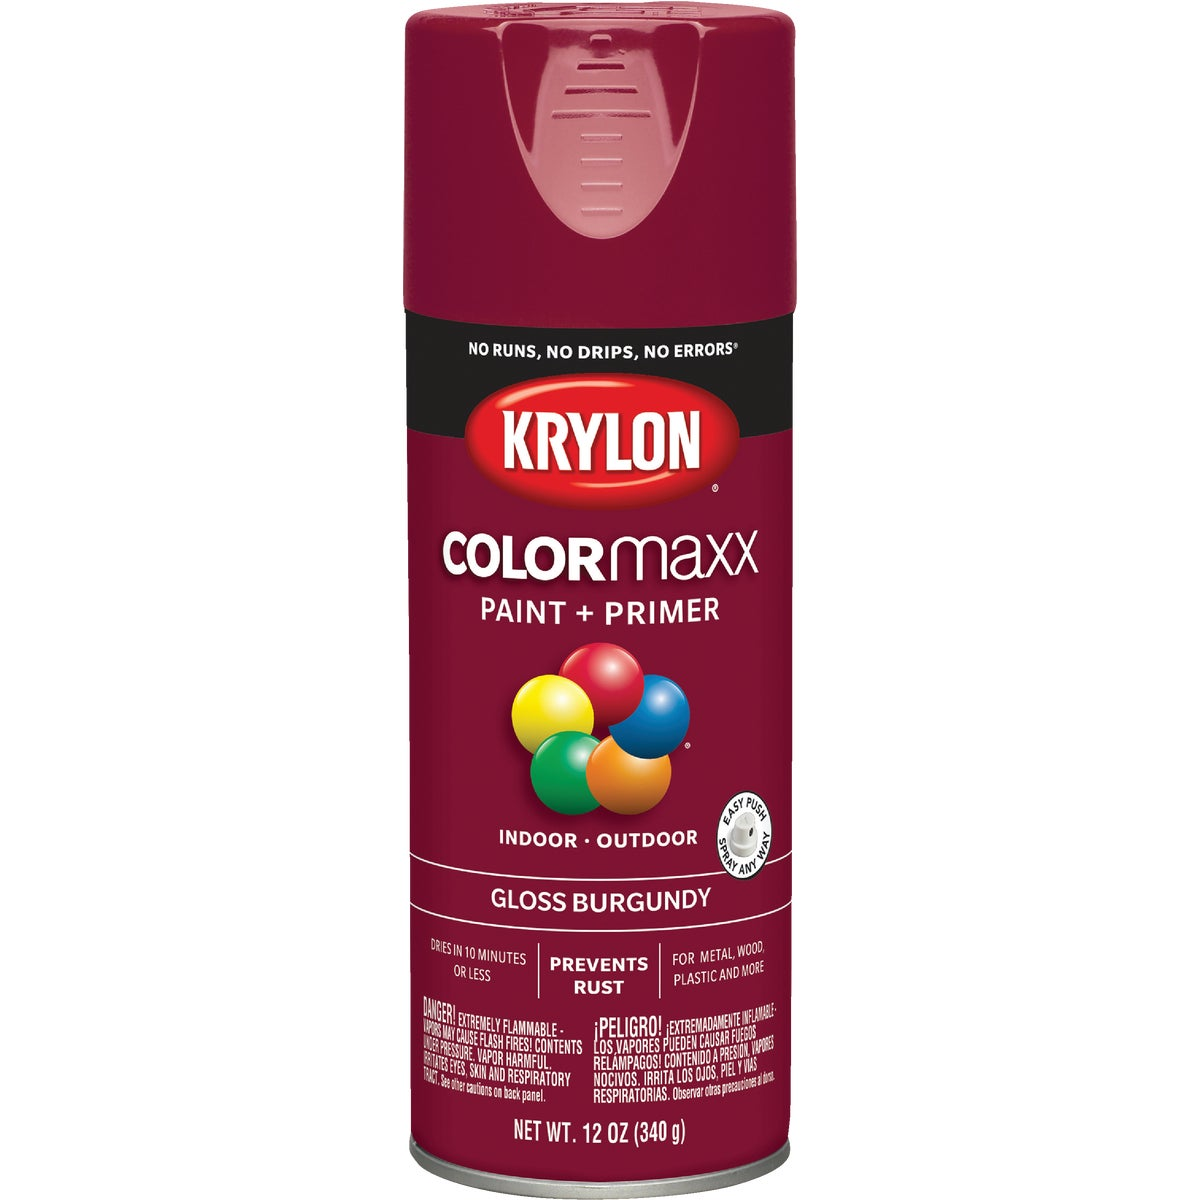 GLS BURGUNDY SPRAY PAINT - 52118 by Krylon/consumer Div